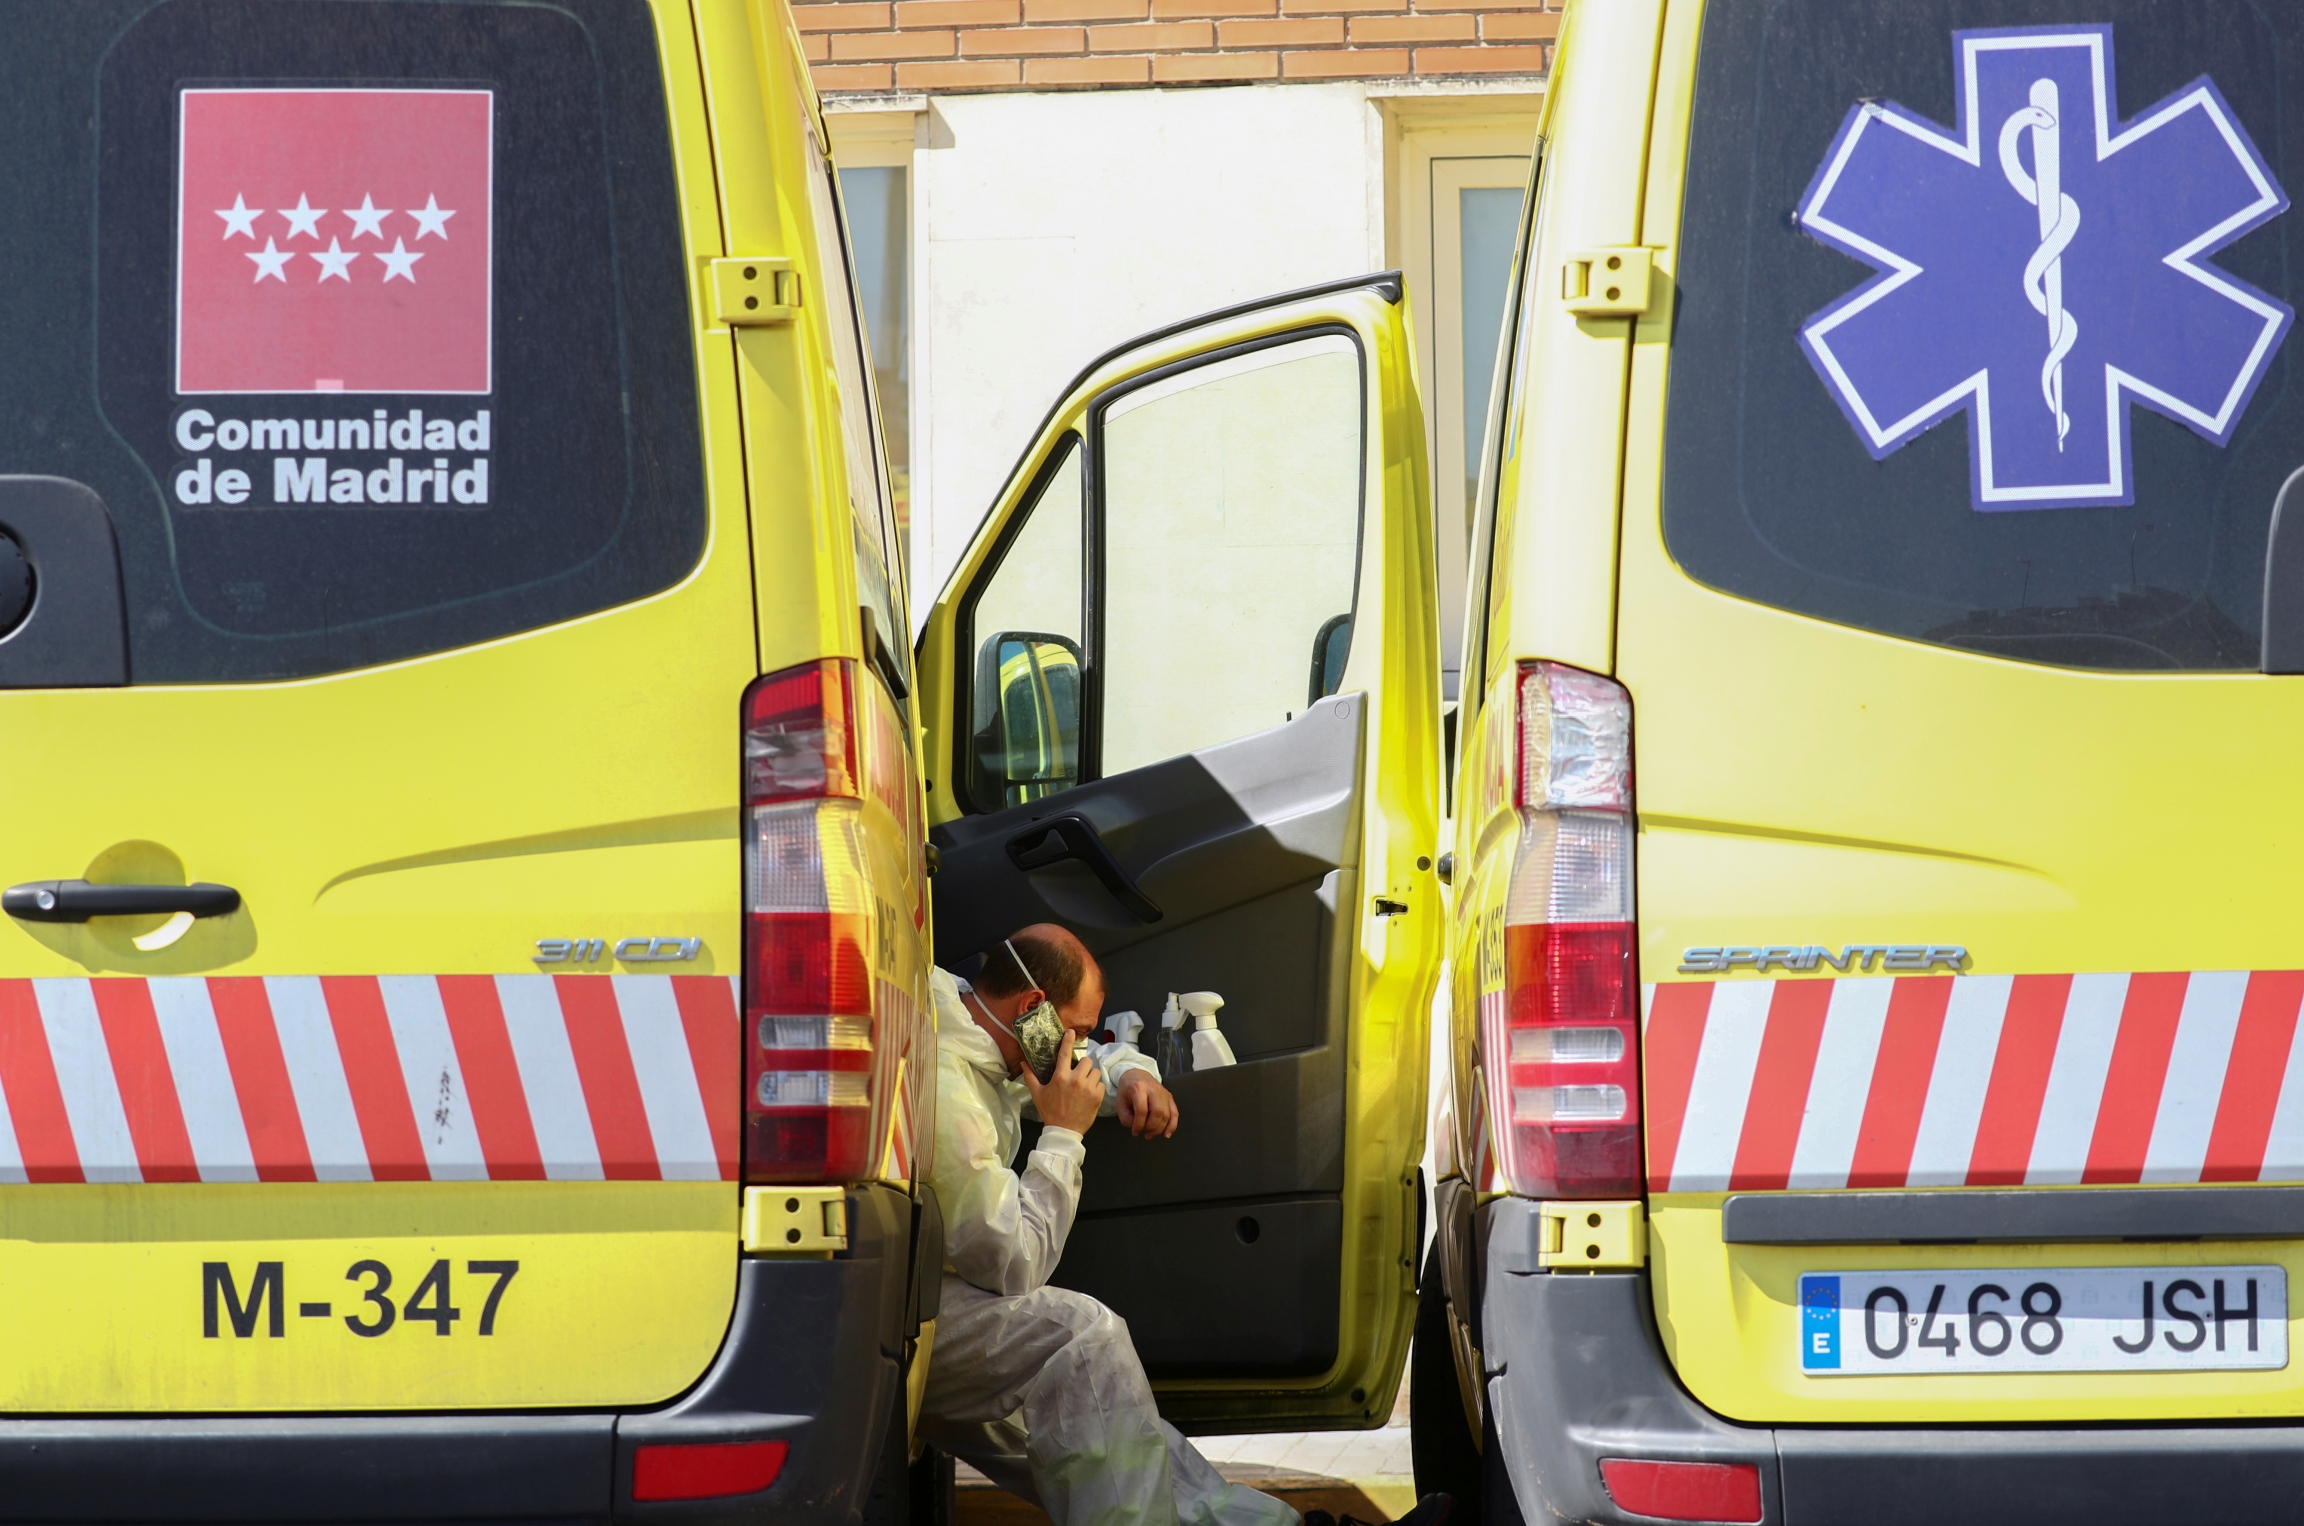 An ambulance driver rests between two vehicles and talks on the phone